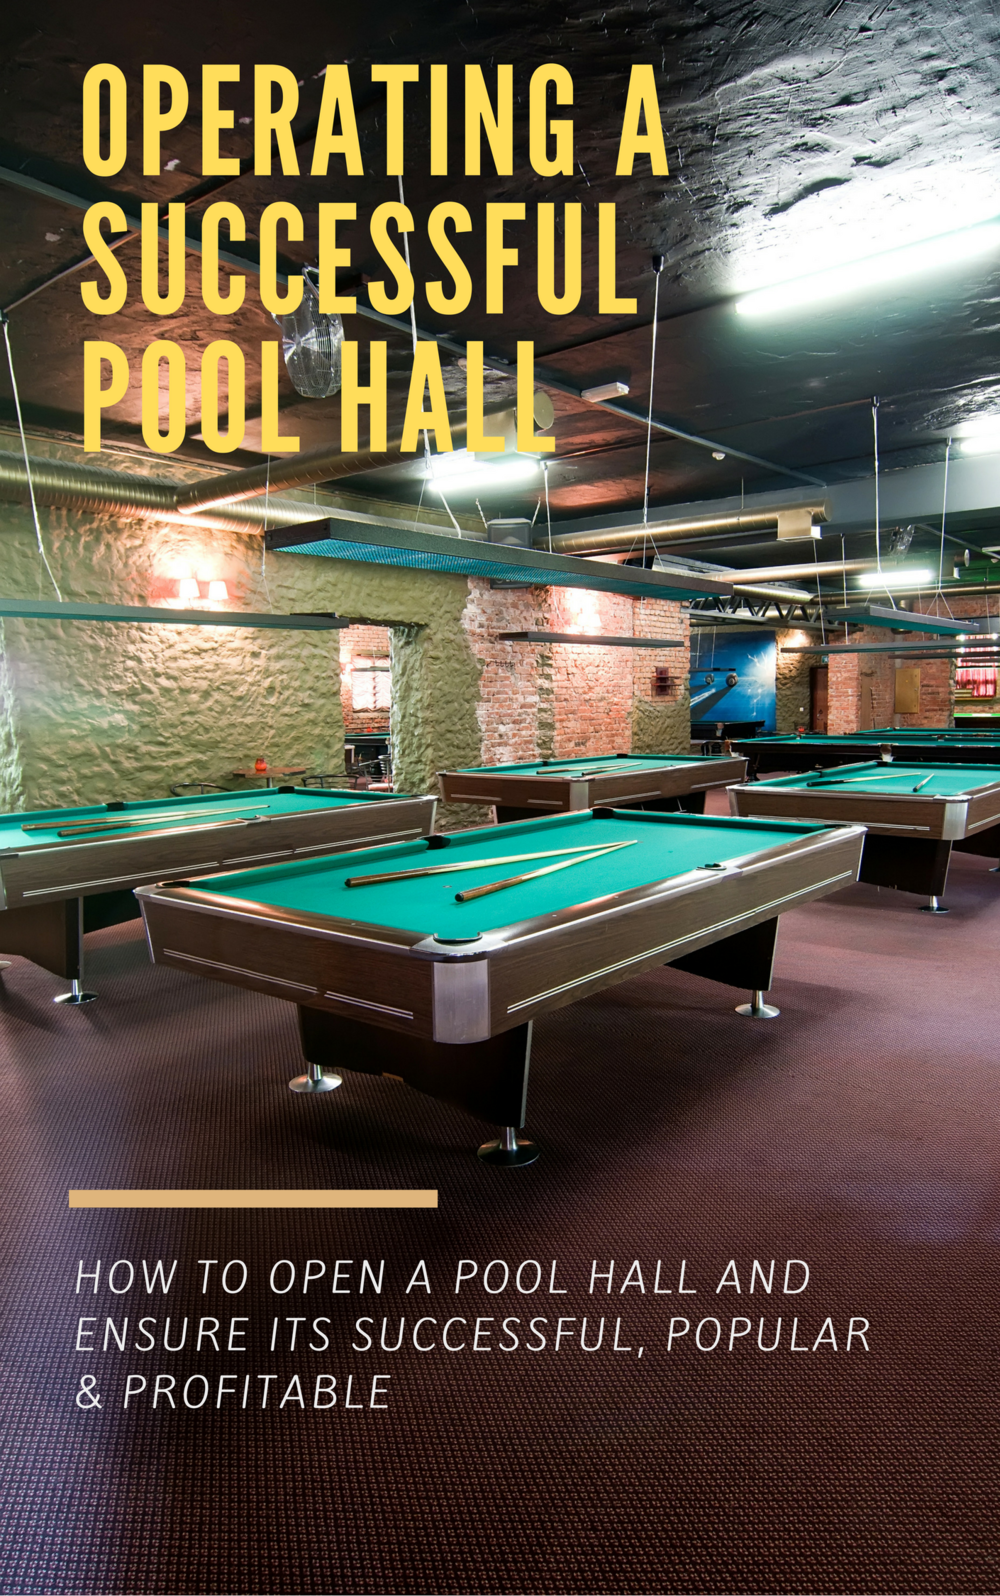 NEW!  This book will save you thousands! - Learn how to properly run your pool hall and position yourself for success                    CLICK HERE to preview